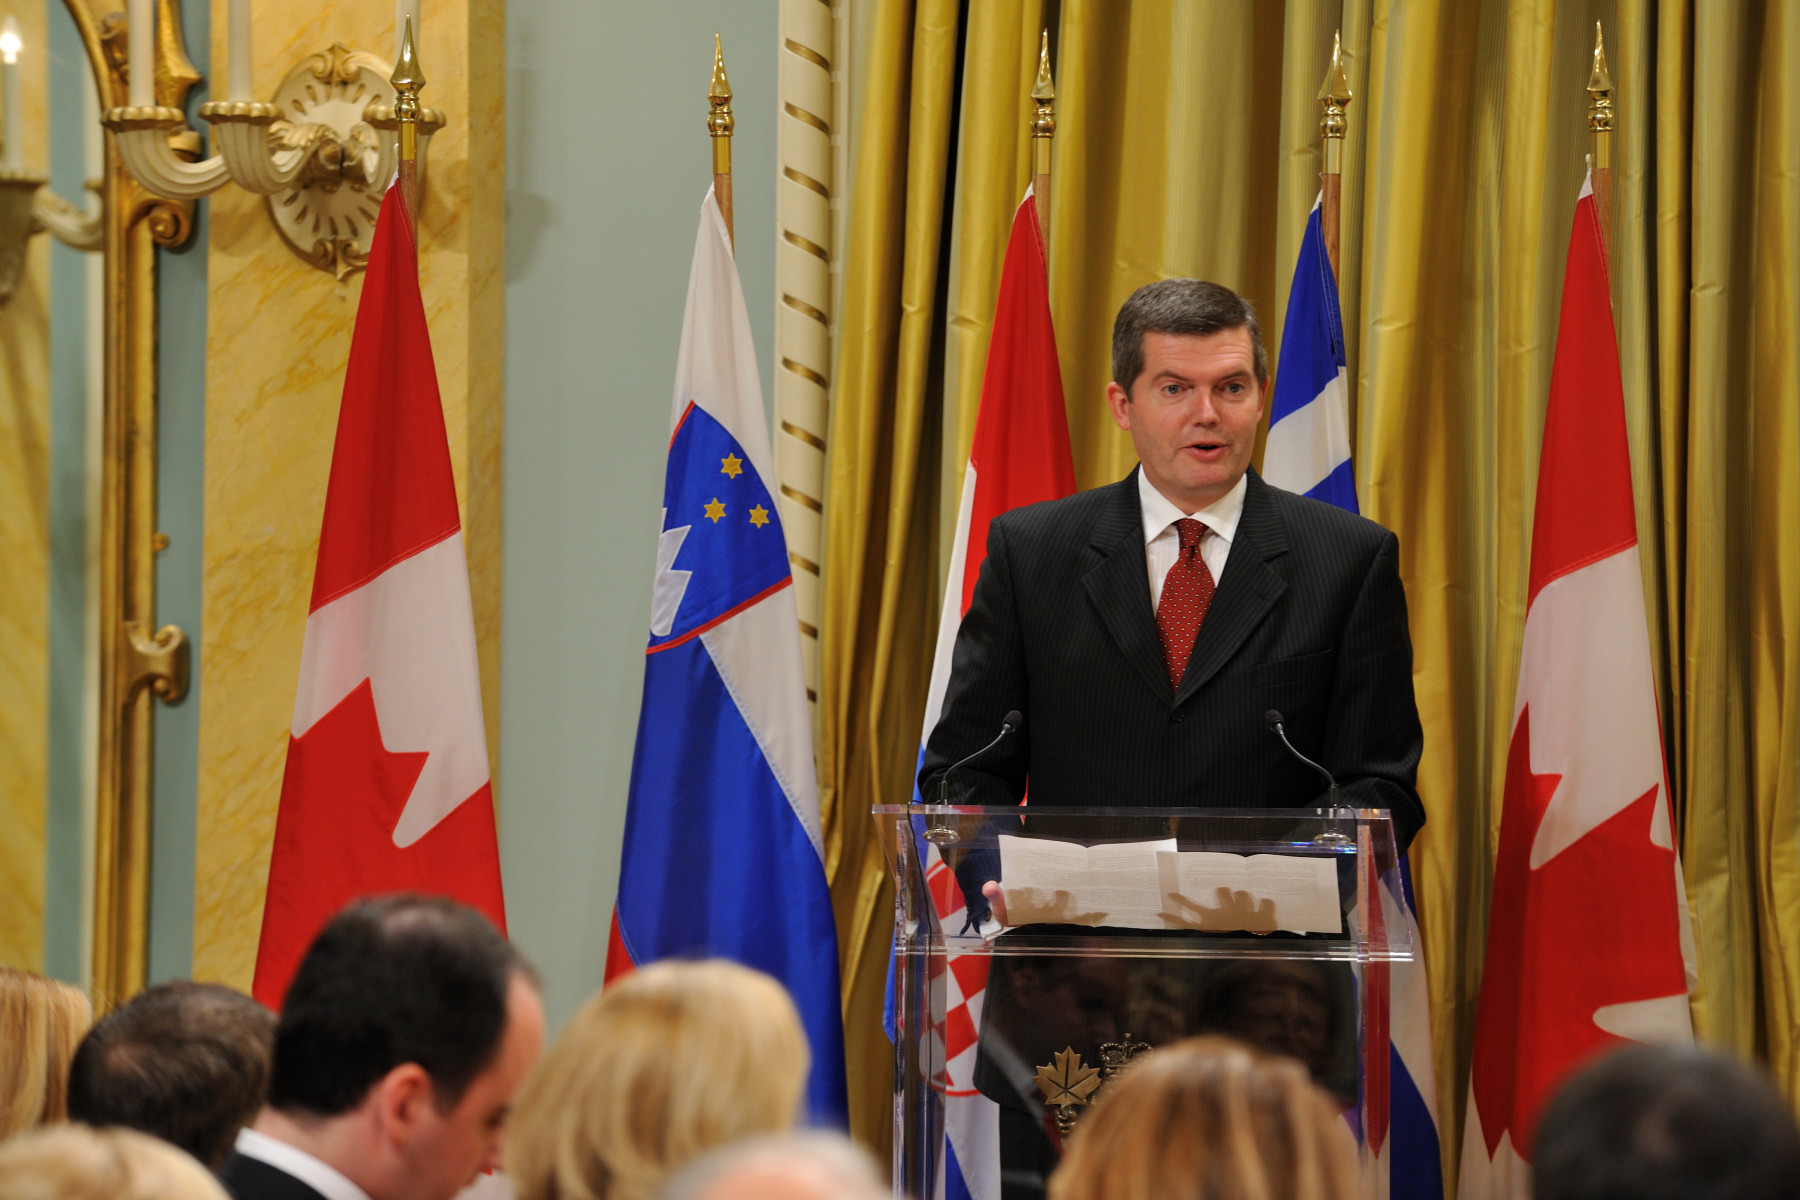 His Excellency Tomaž Kunstelj, Ambassador of Slovenia to Canada, delivered a speech on this occasion.